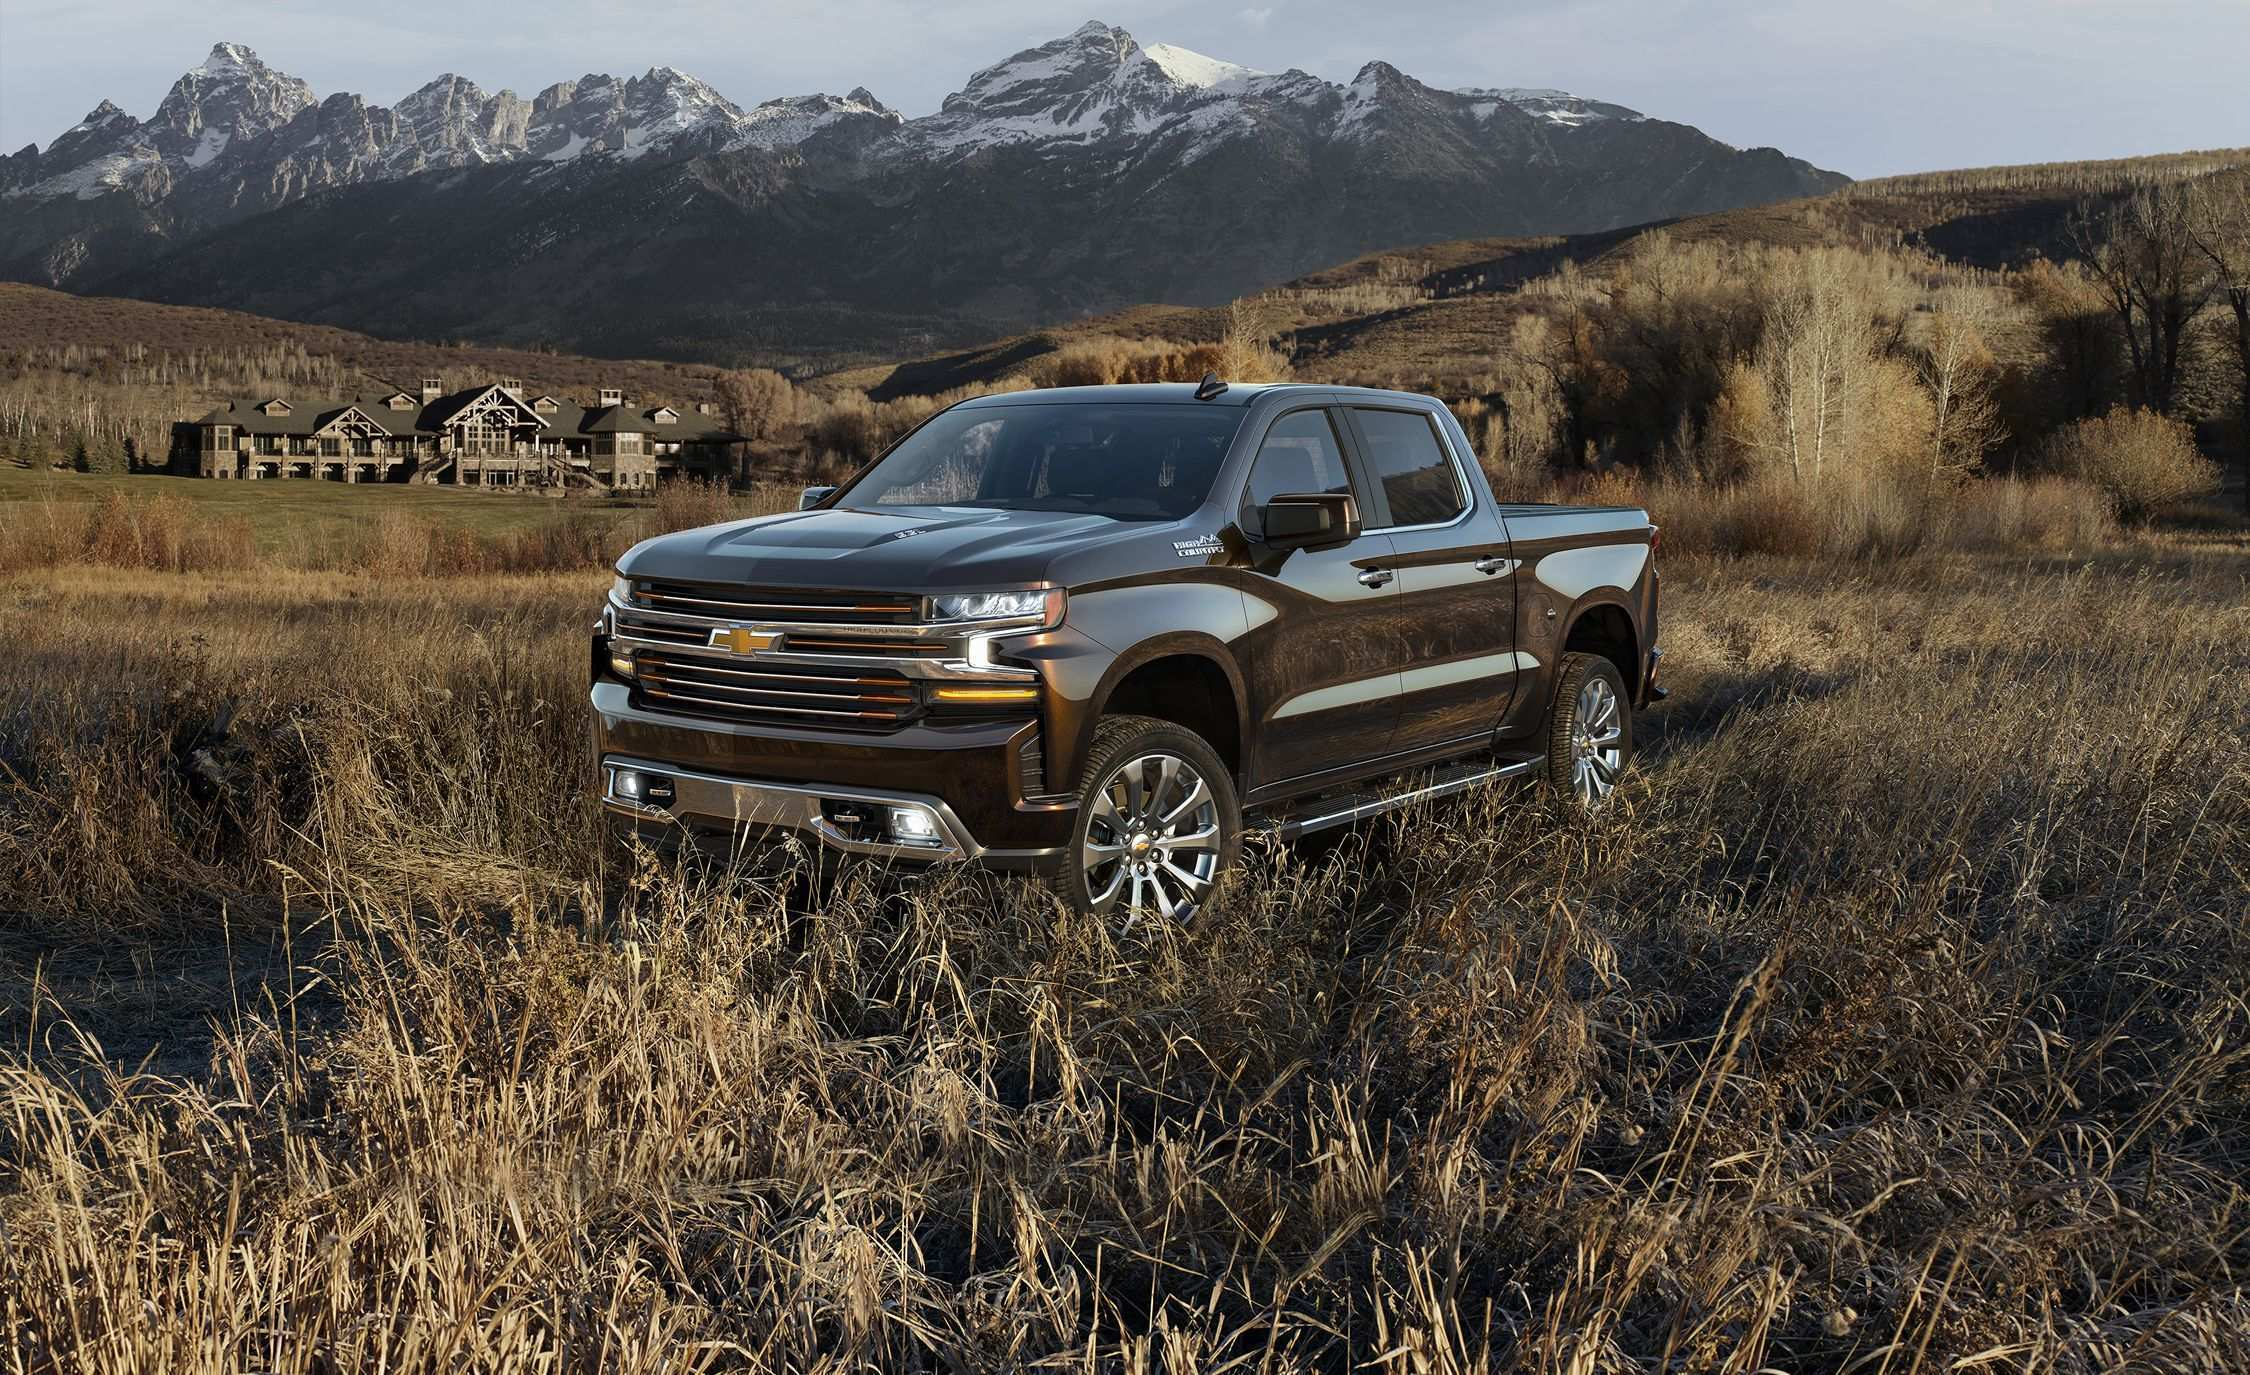 18 All New 2019 Chevrolet Silverado 1500 Review Exterior by 2019 Chevrolet Silverado 1500 Review